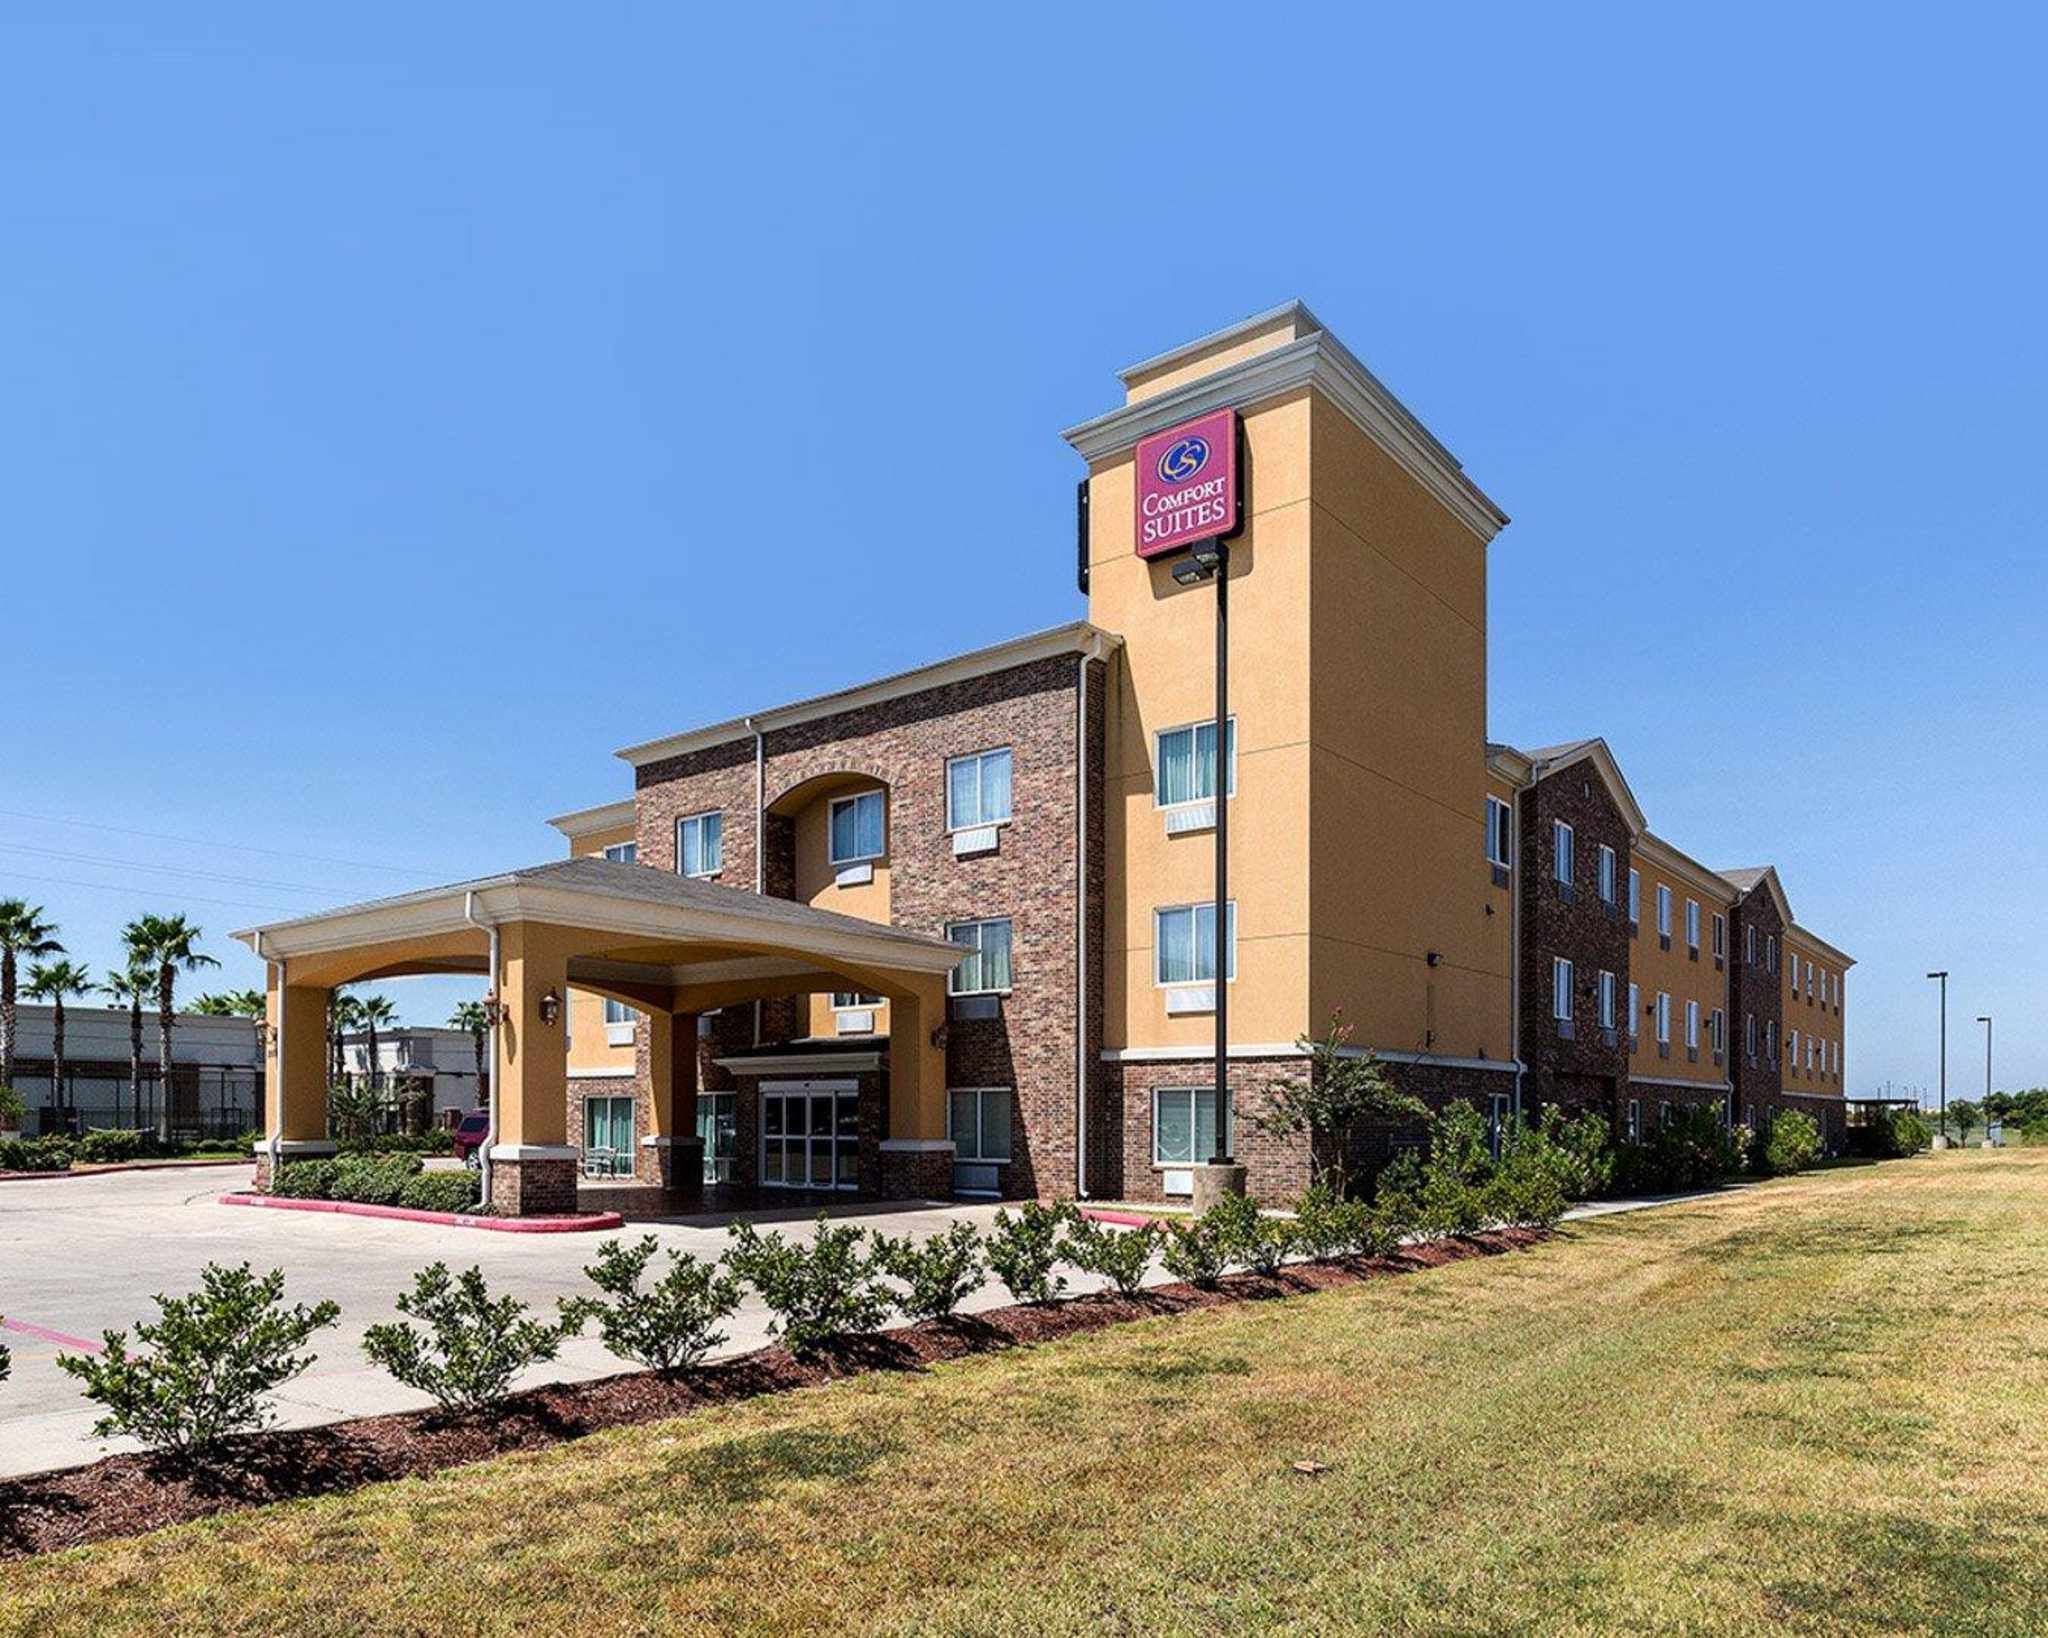 Comfort Suites Pearland - South Houston image 1